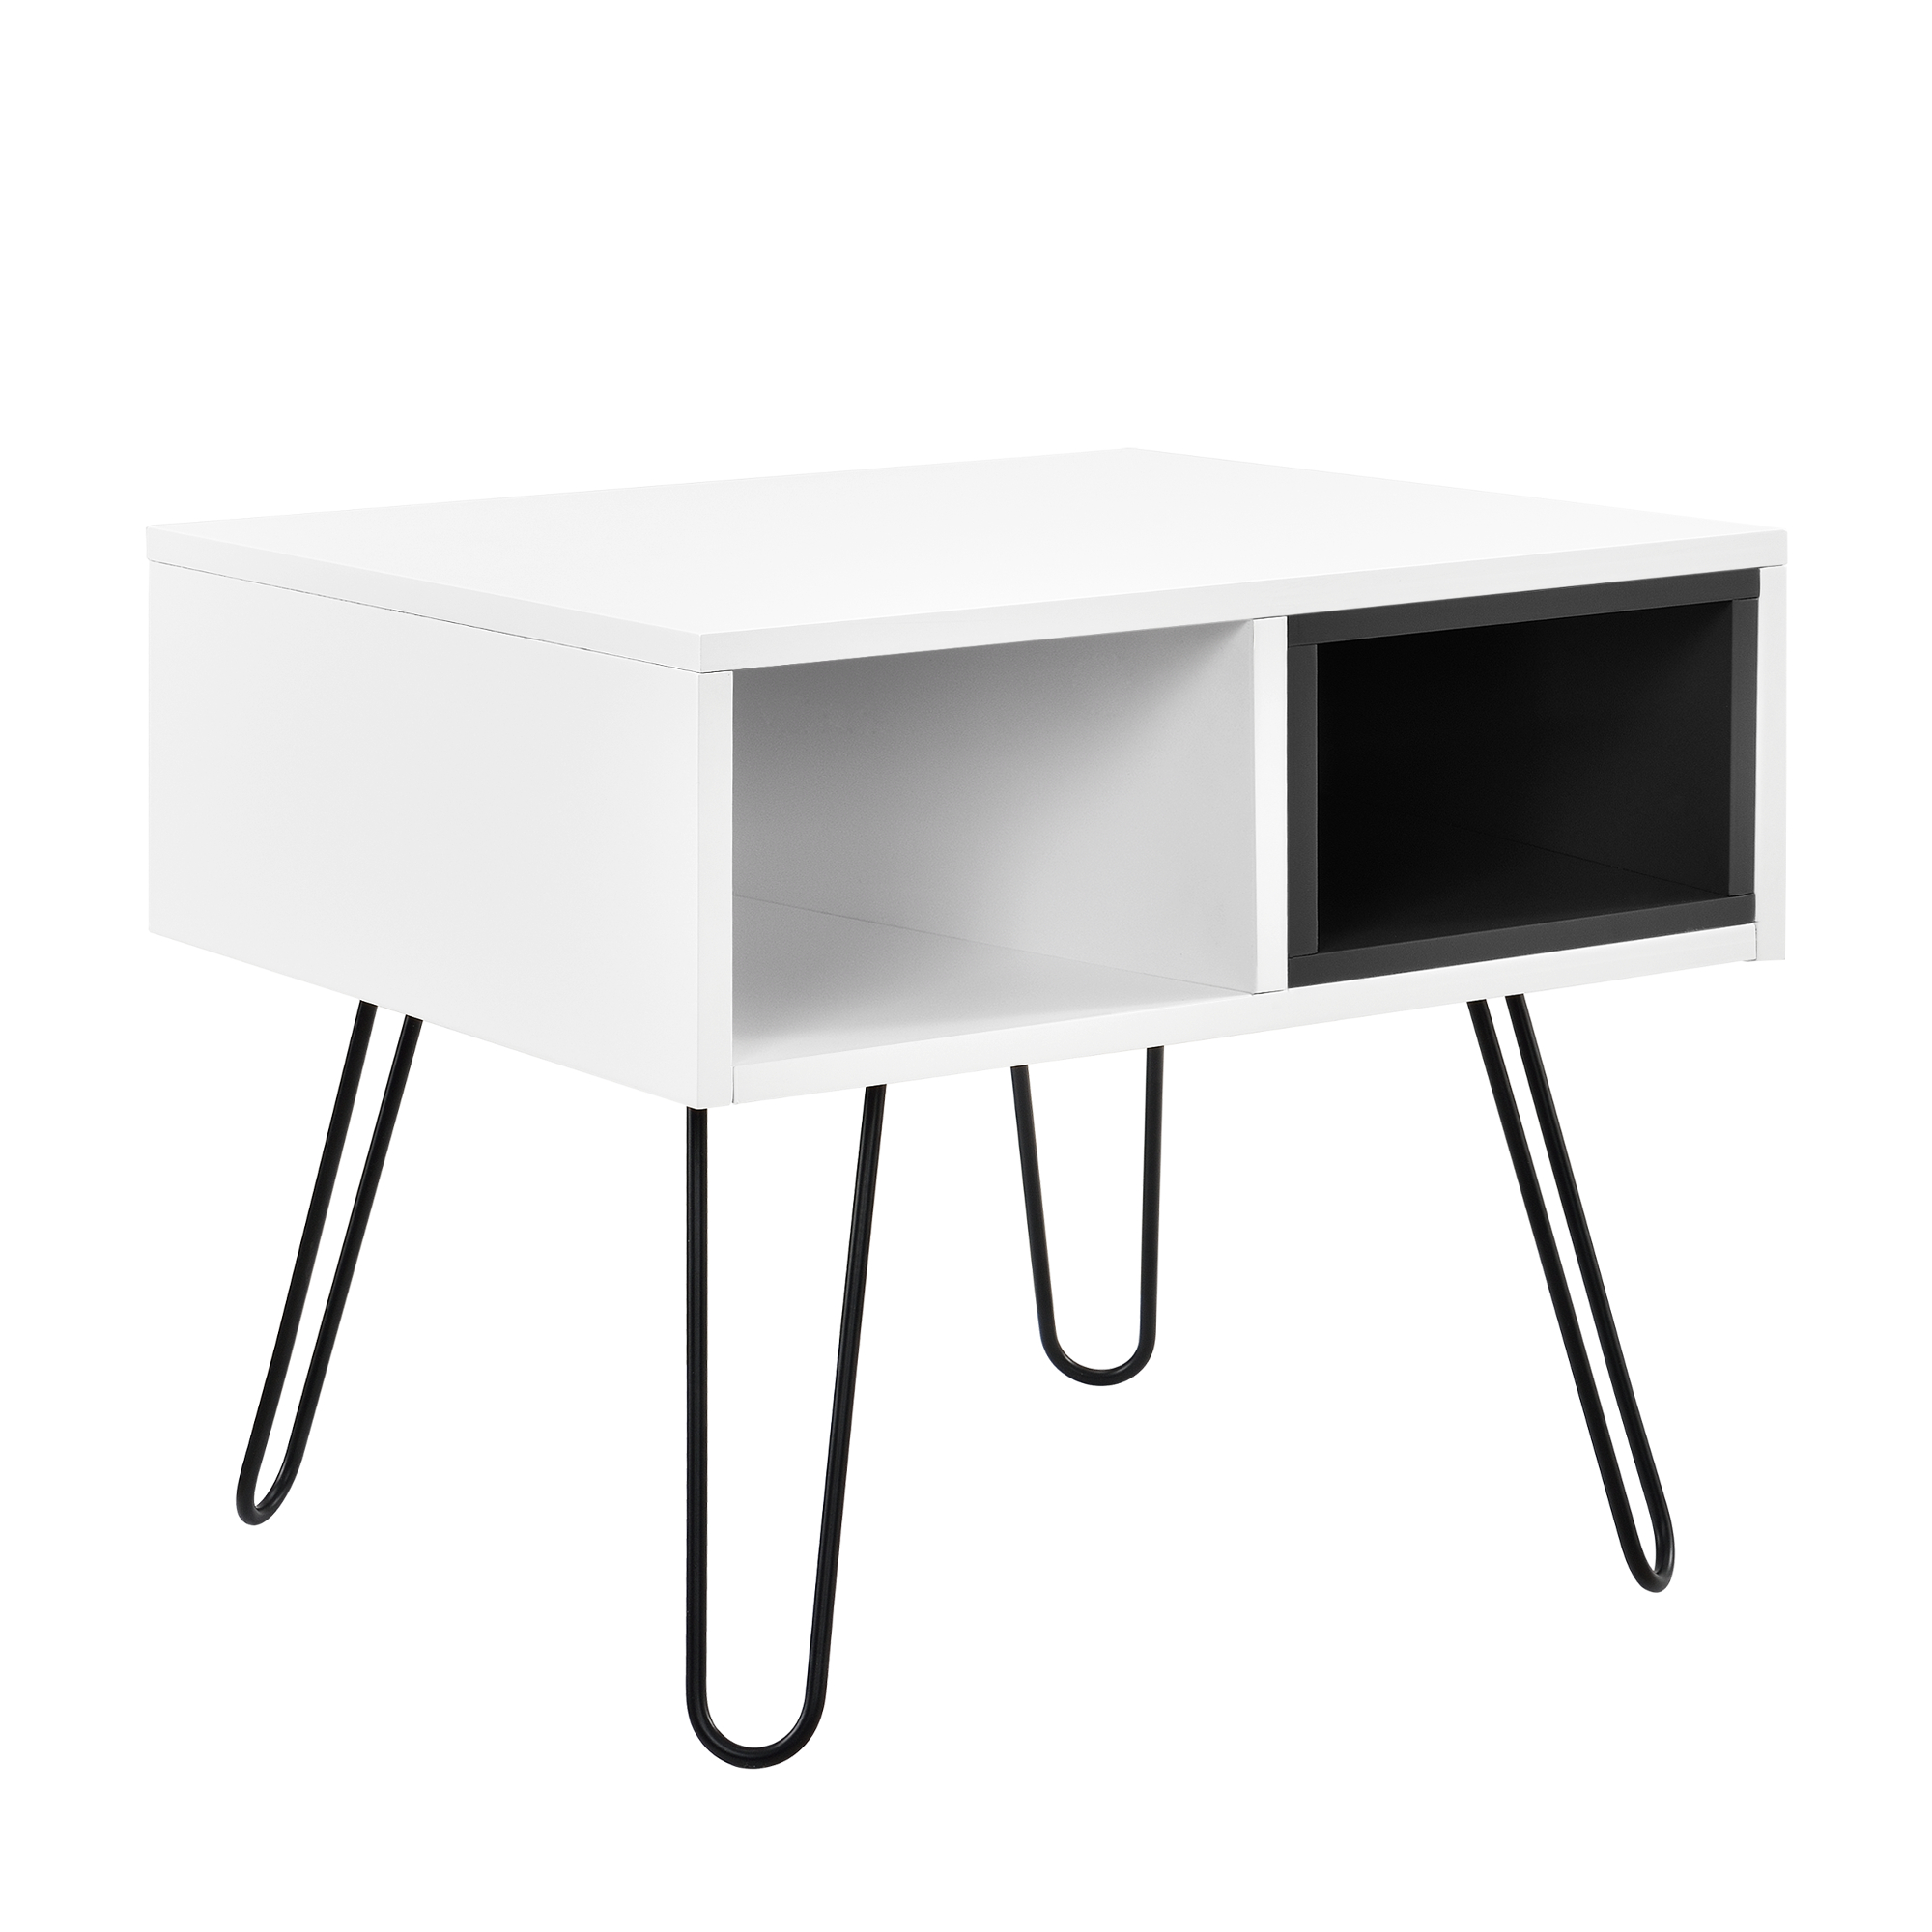 design konsolentisch sideboard schrank beistelltisch computer tisch ebay. Black Bedroom Furniture Sets. Home Design Ideas